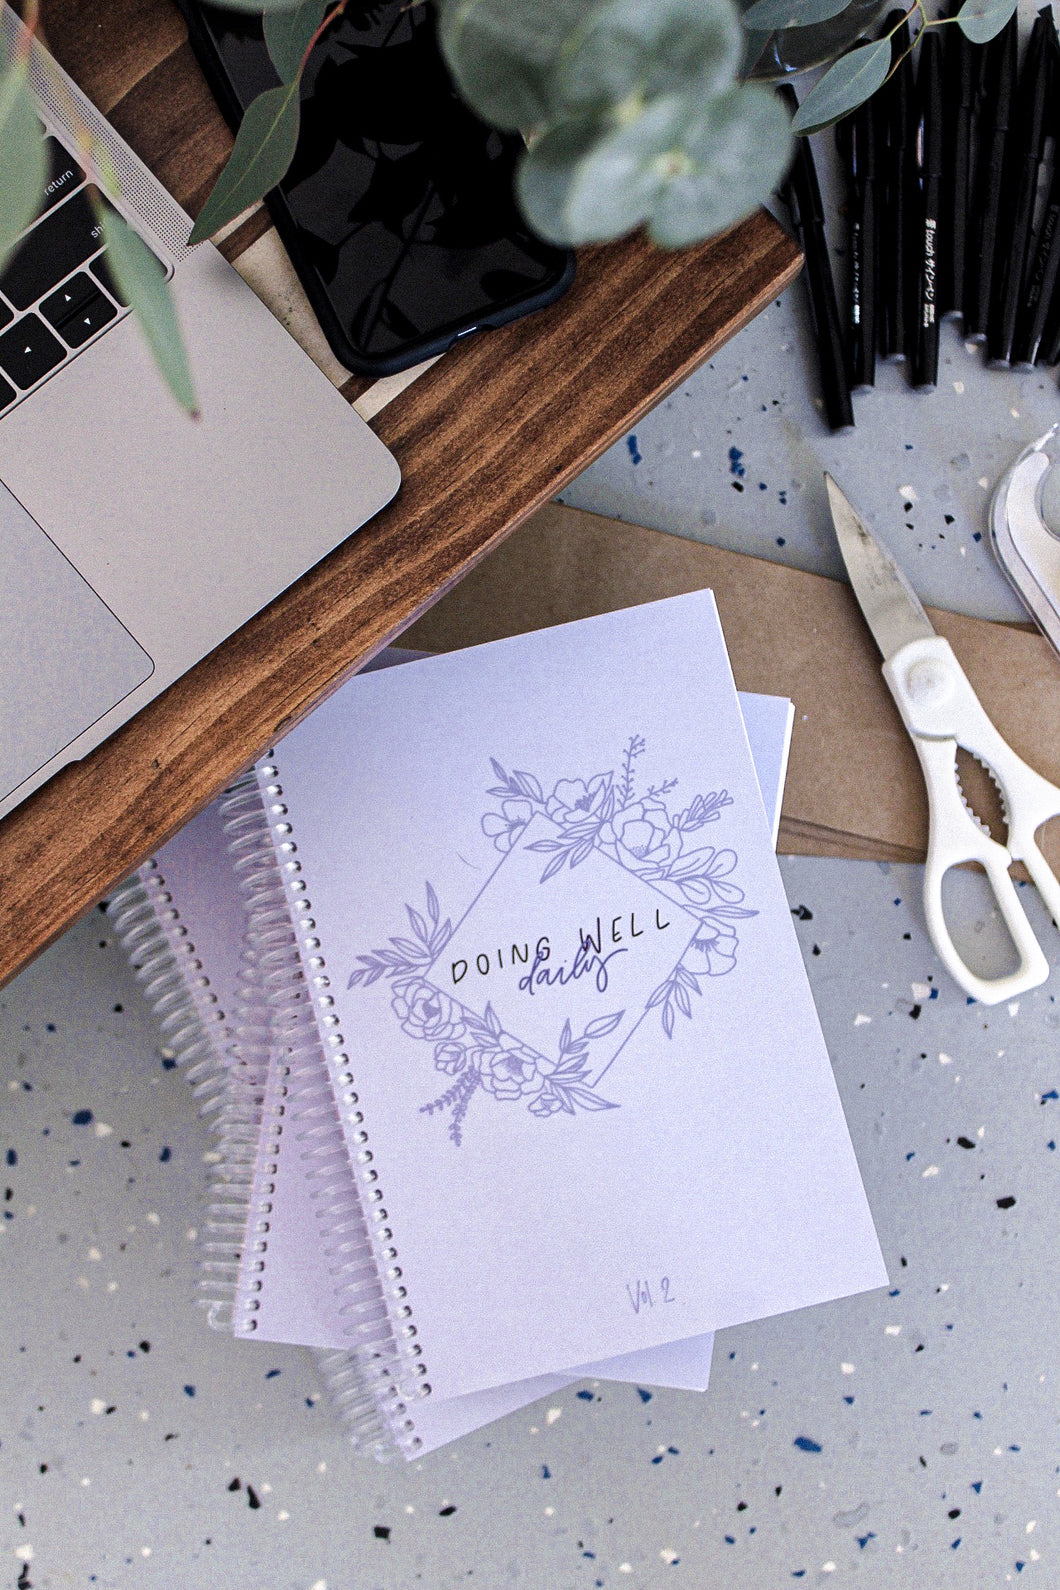 Doing Well Daybook Bundle